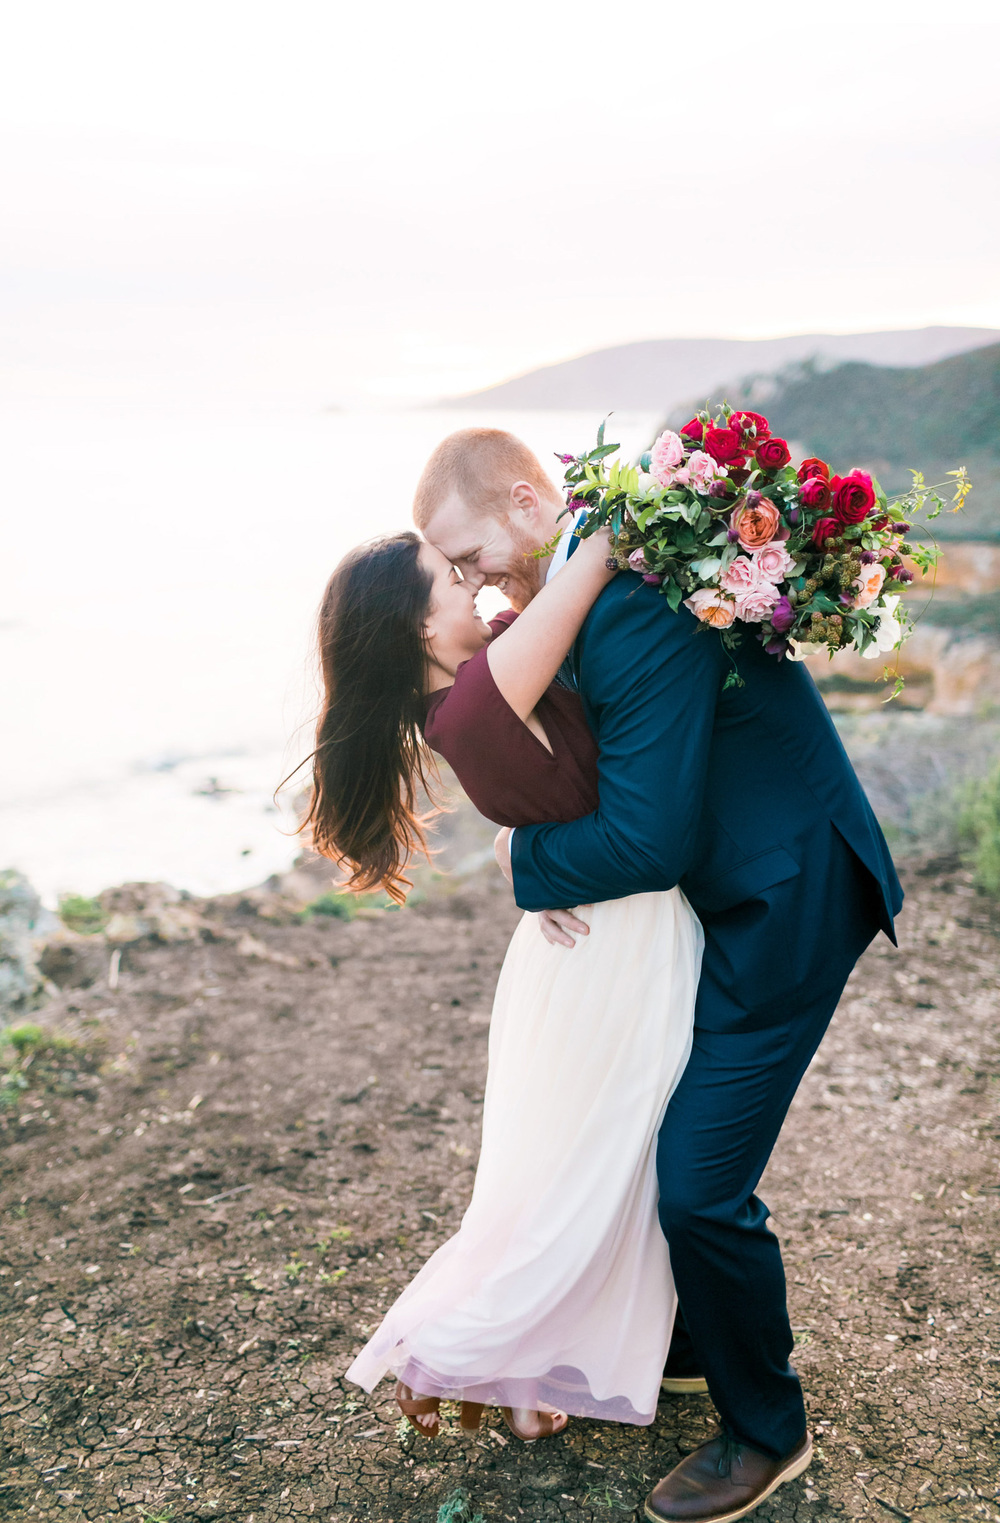 Big_Sur_Wedding_Photographer_Natalie_Schutt_Photography_02.jpg